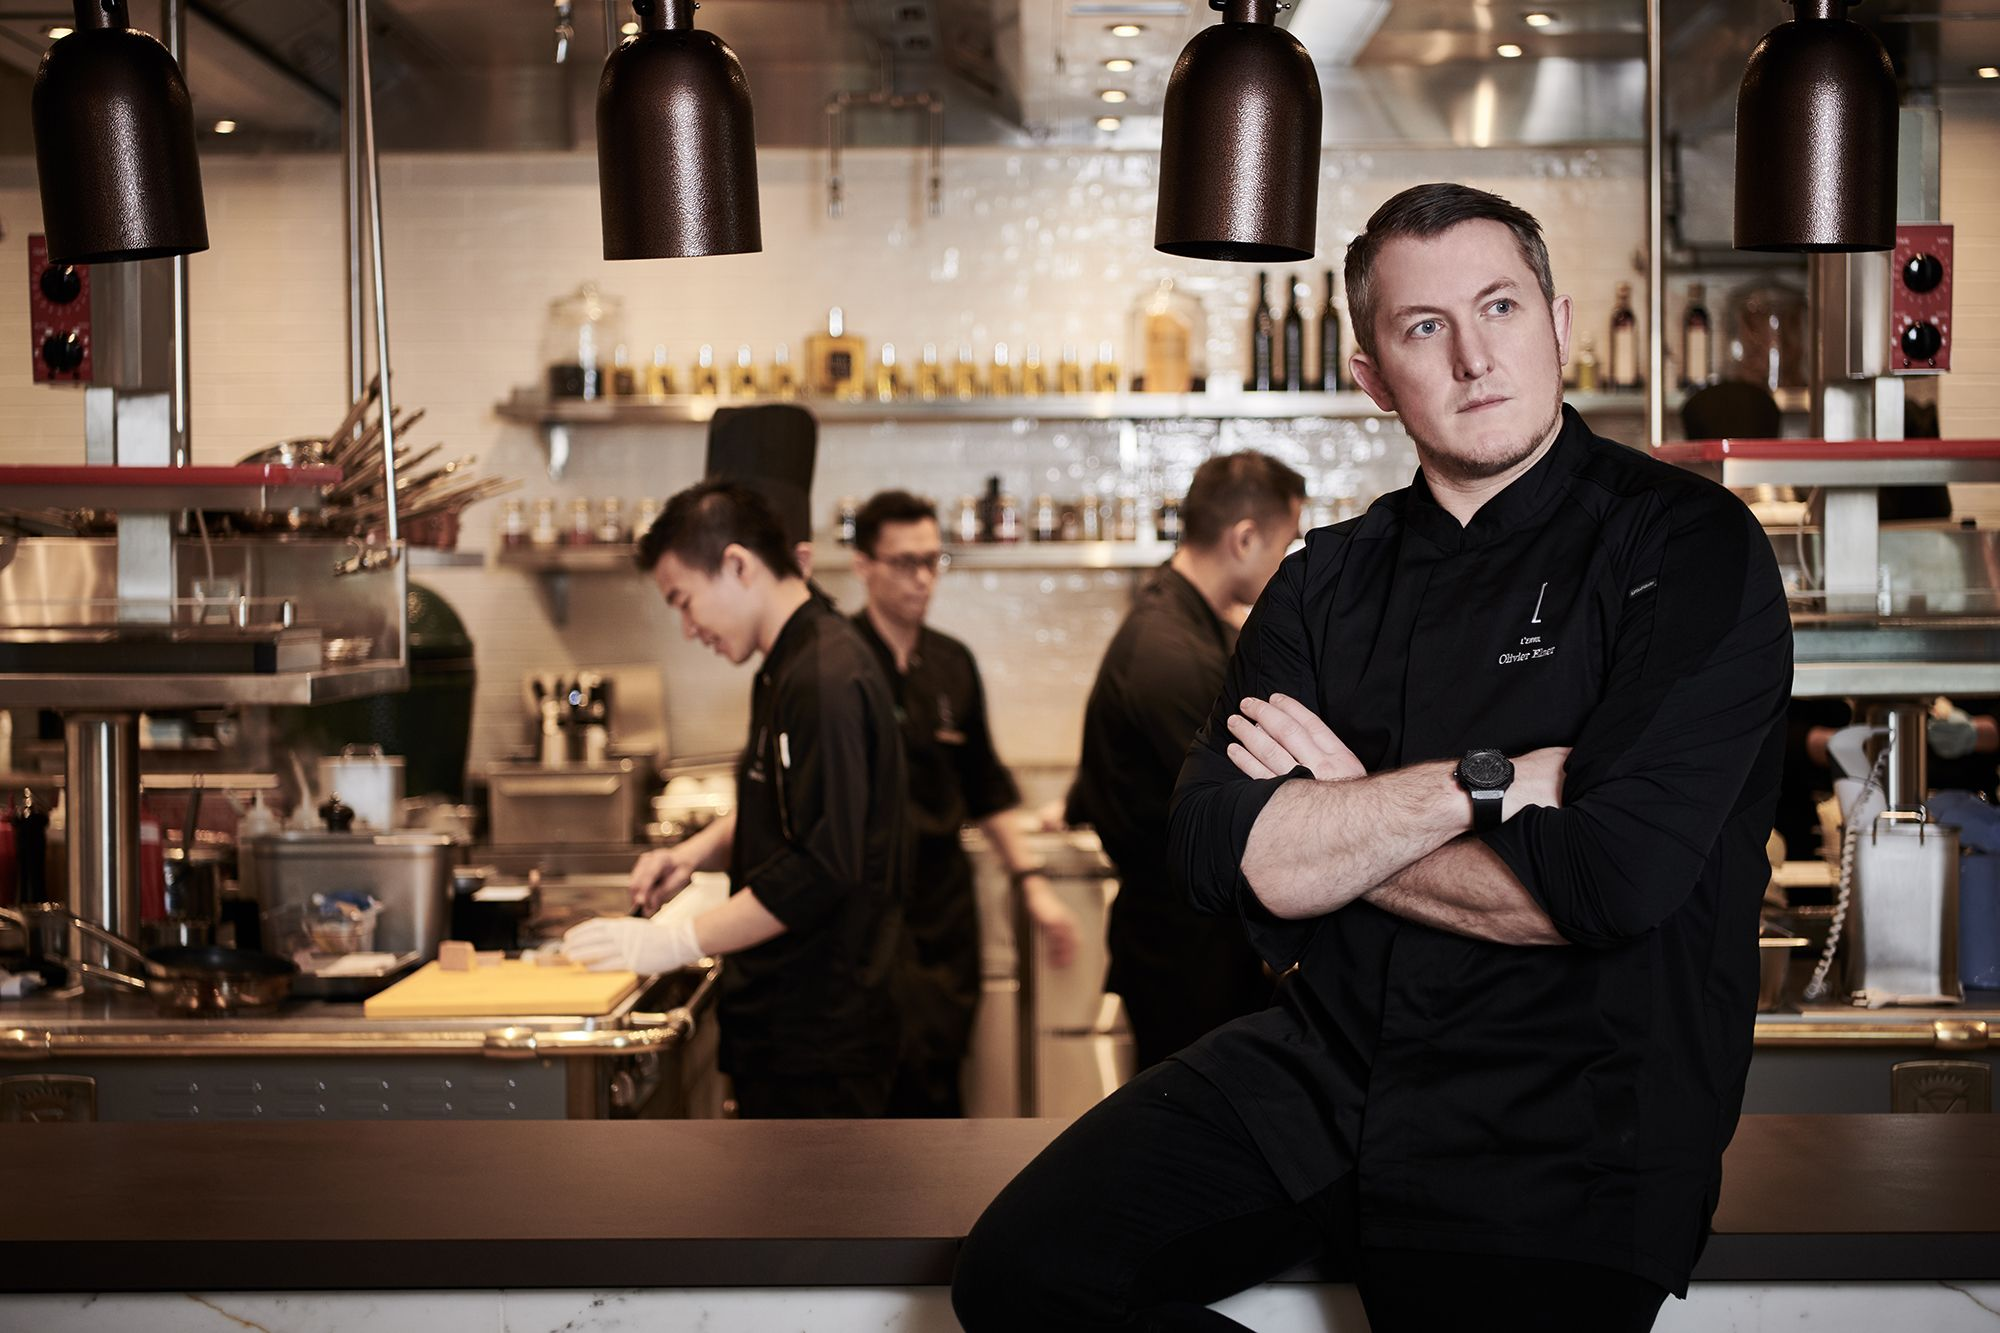 Review: L'Envol, Olivier Elzer's Long-Awaited Restaurant, Is A Blast To The Past